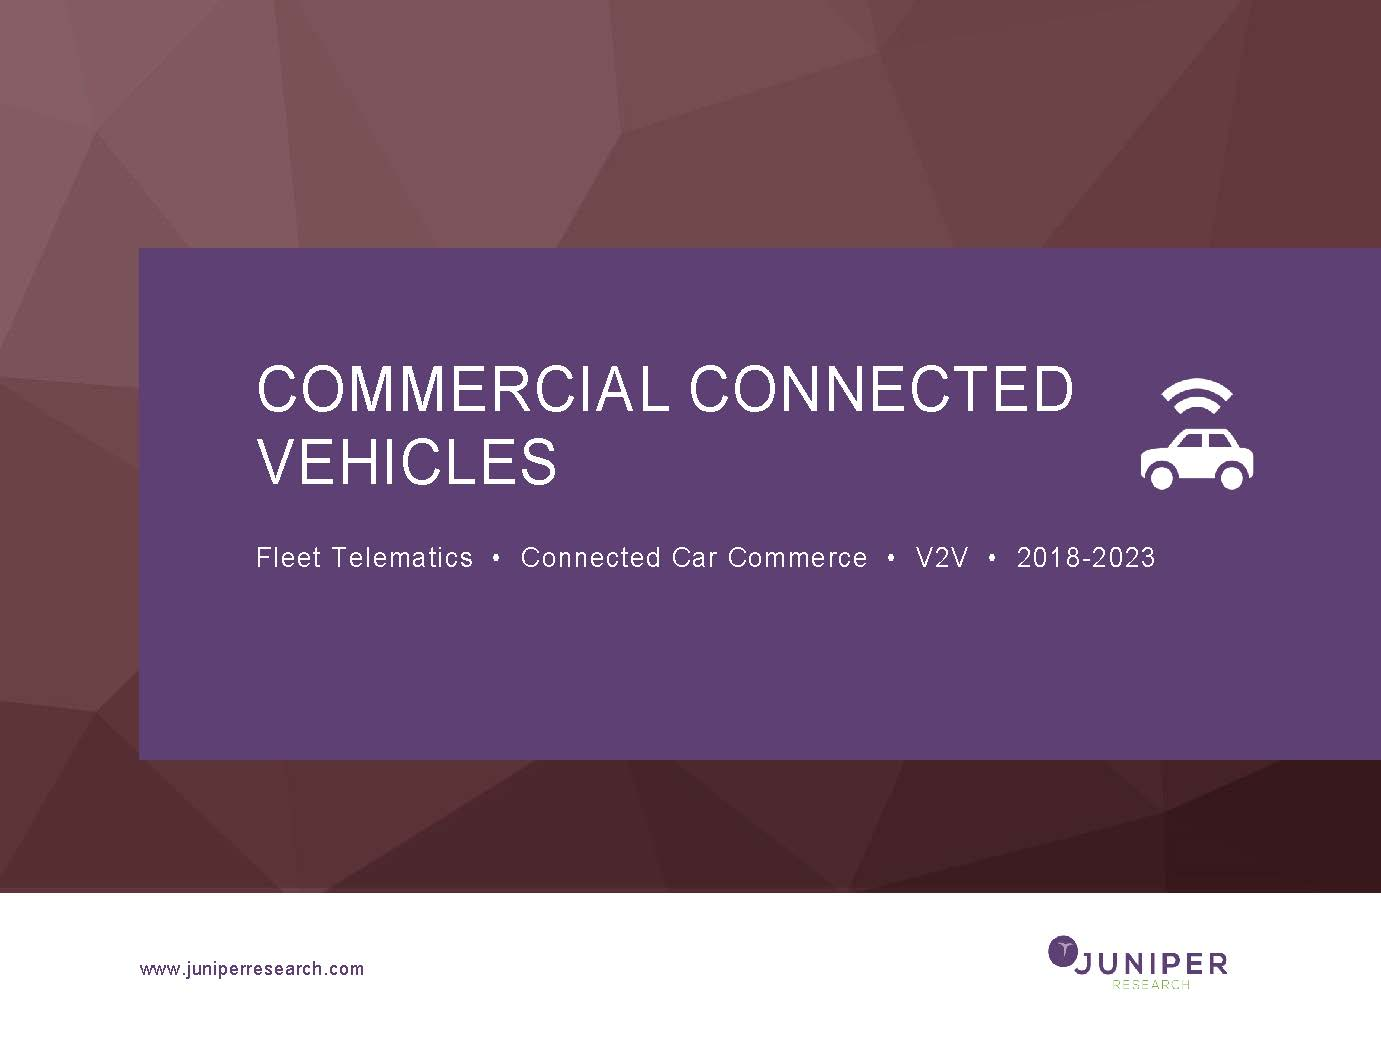 Commercial Connected Vehicles